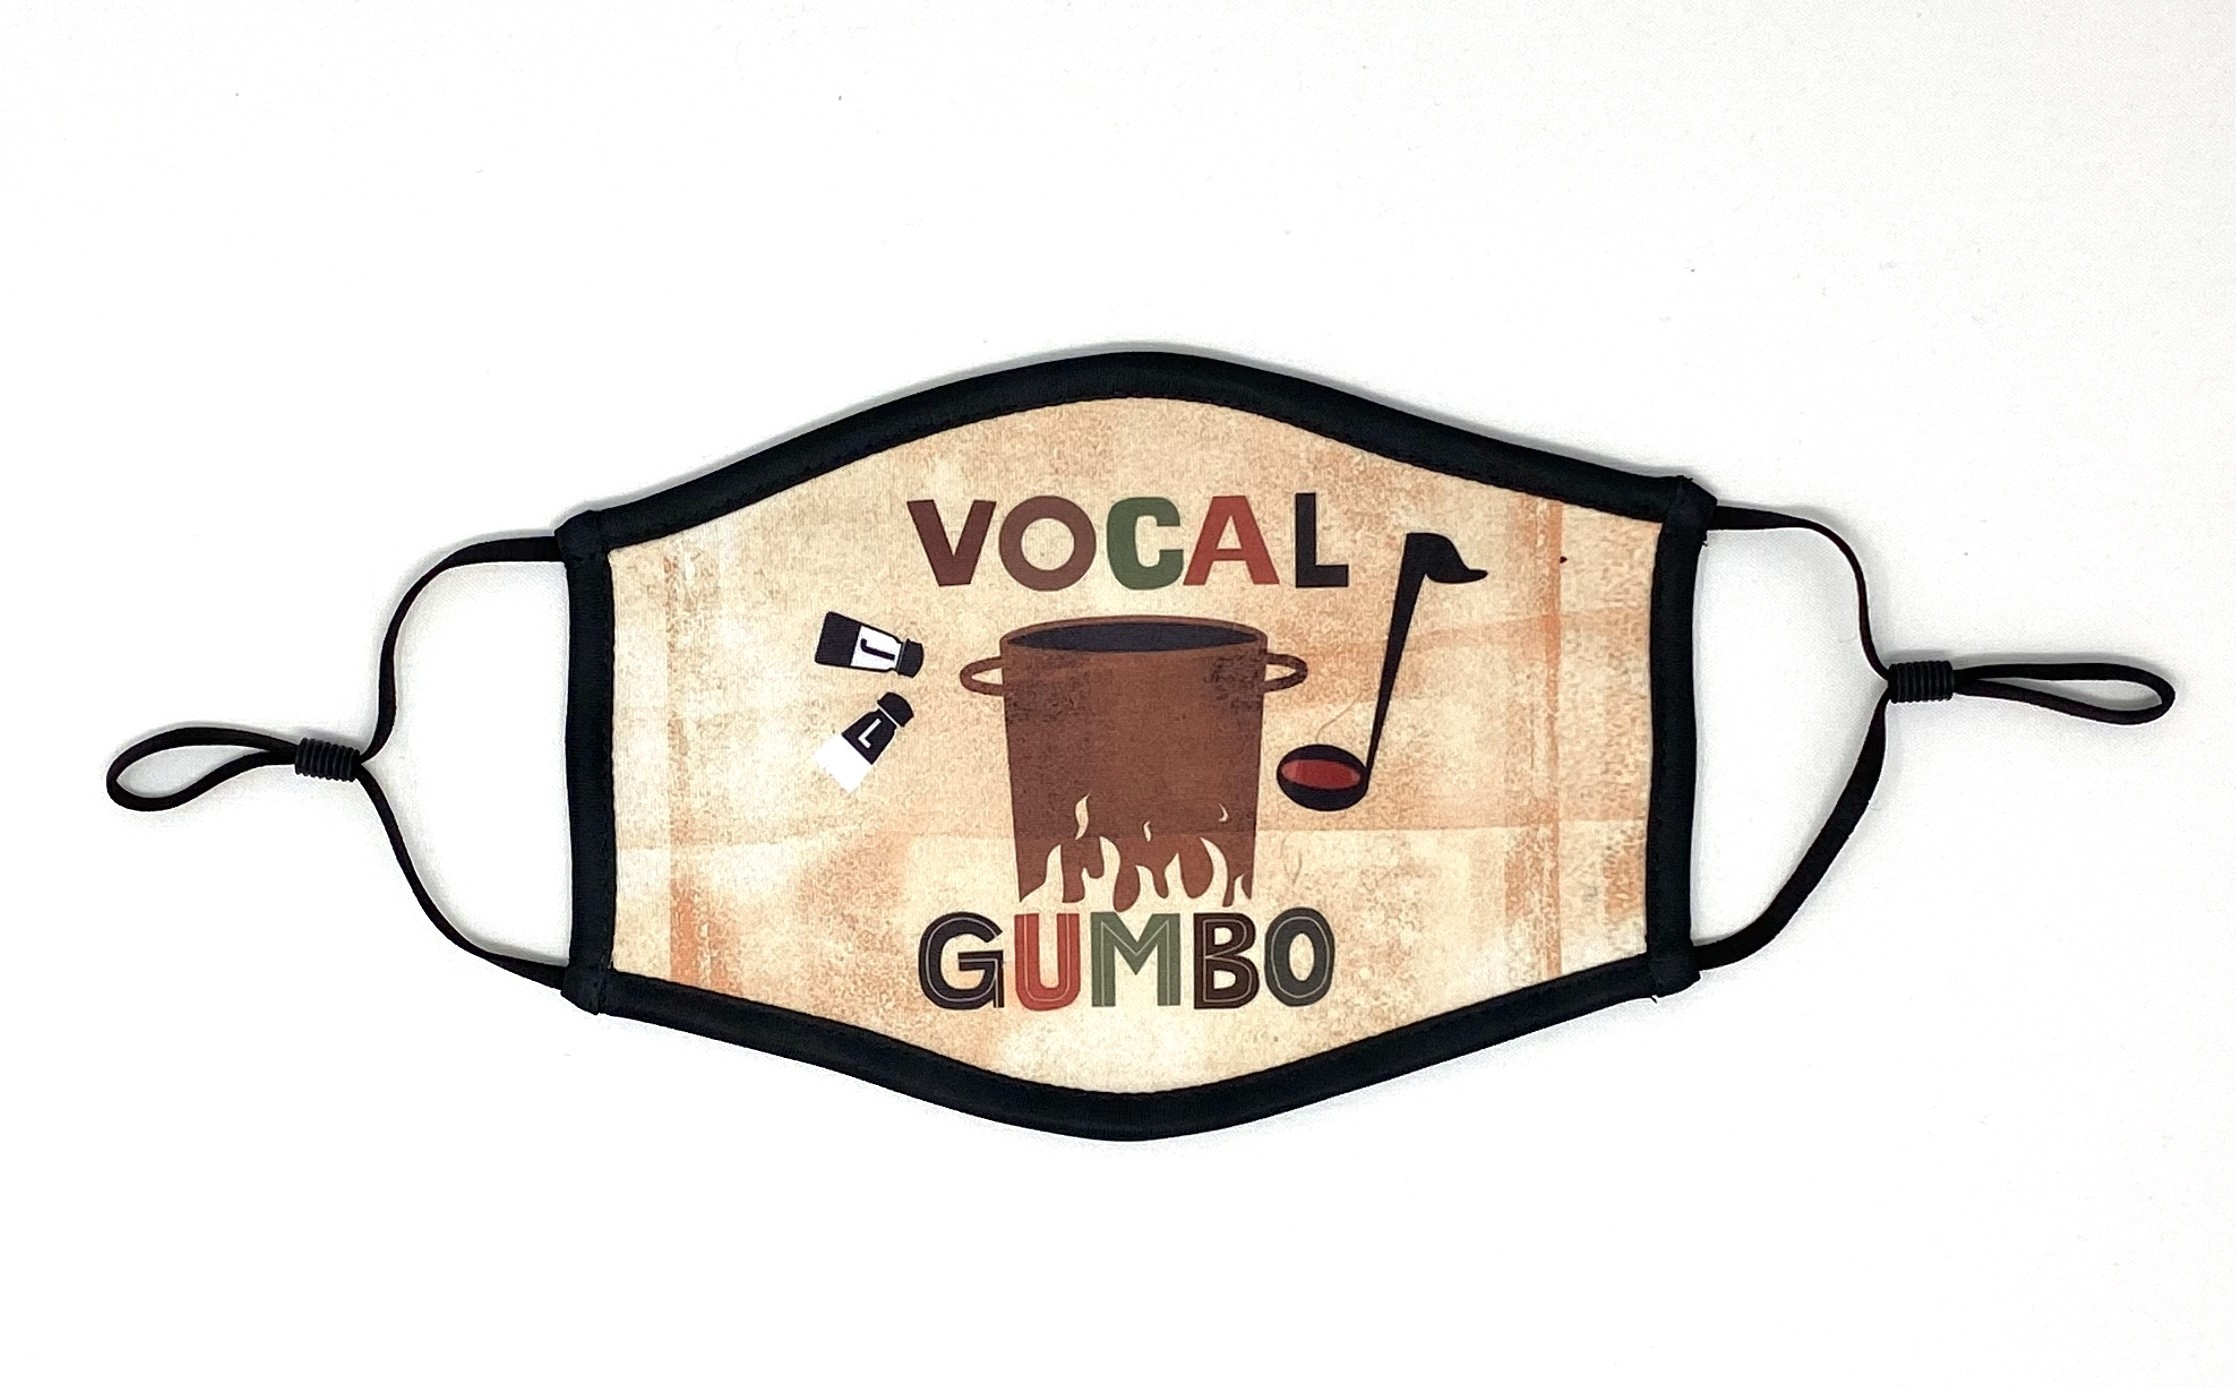 VOCAL GUMBO (Janis Siegel of The Manhattan Transfer, and Lauren Kinhan of New York Voices) 3 Layer Face Mask